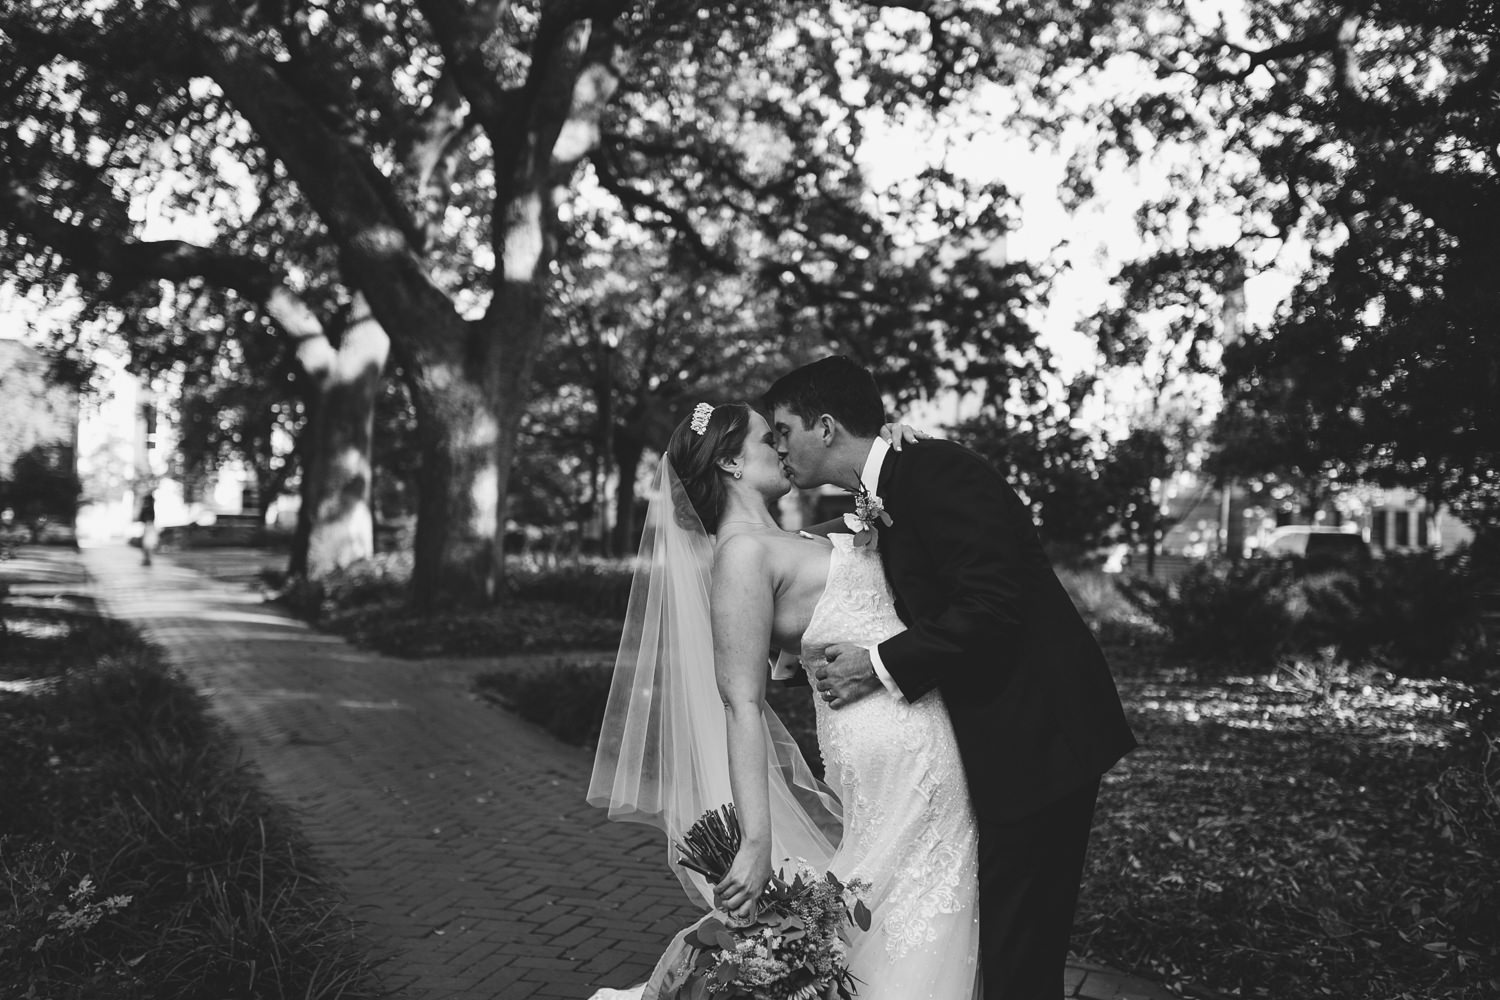 Wedding photographer in Savannah